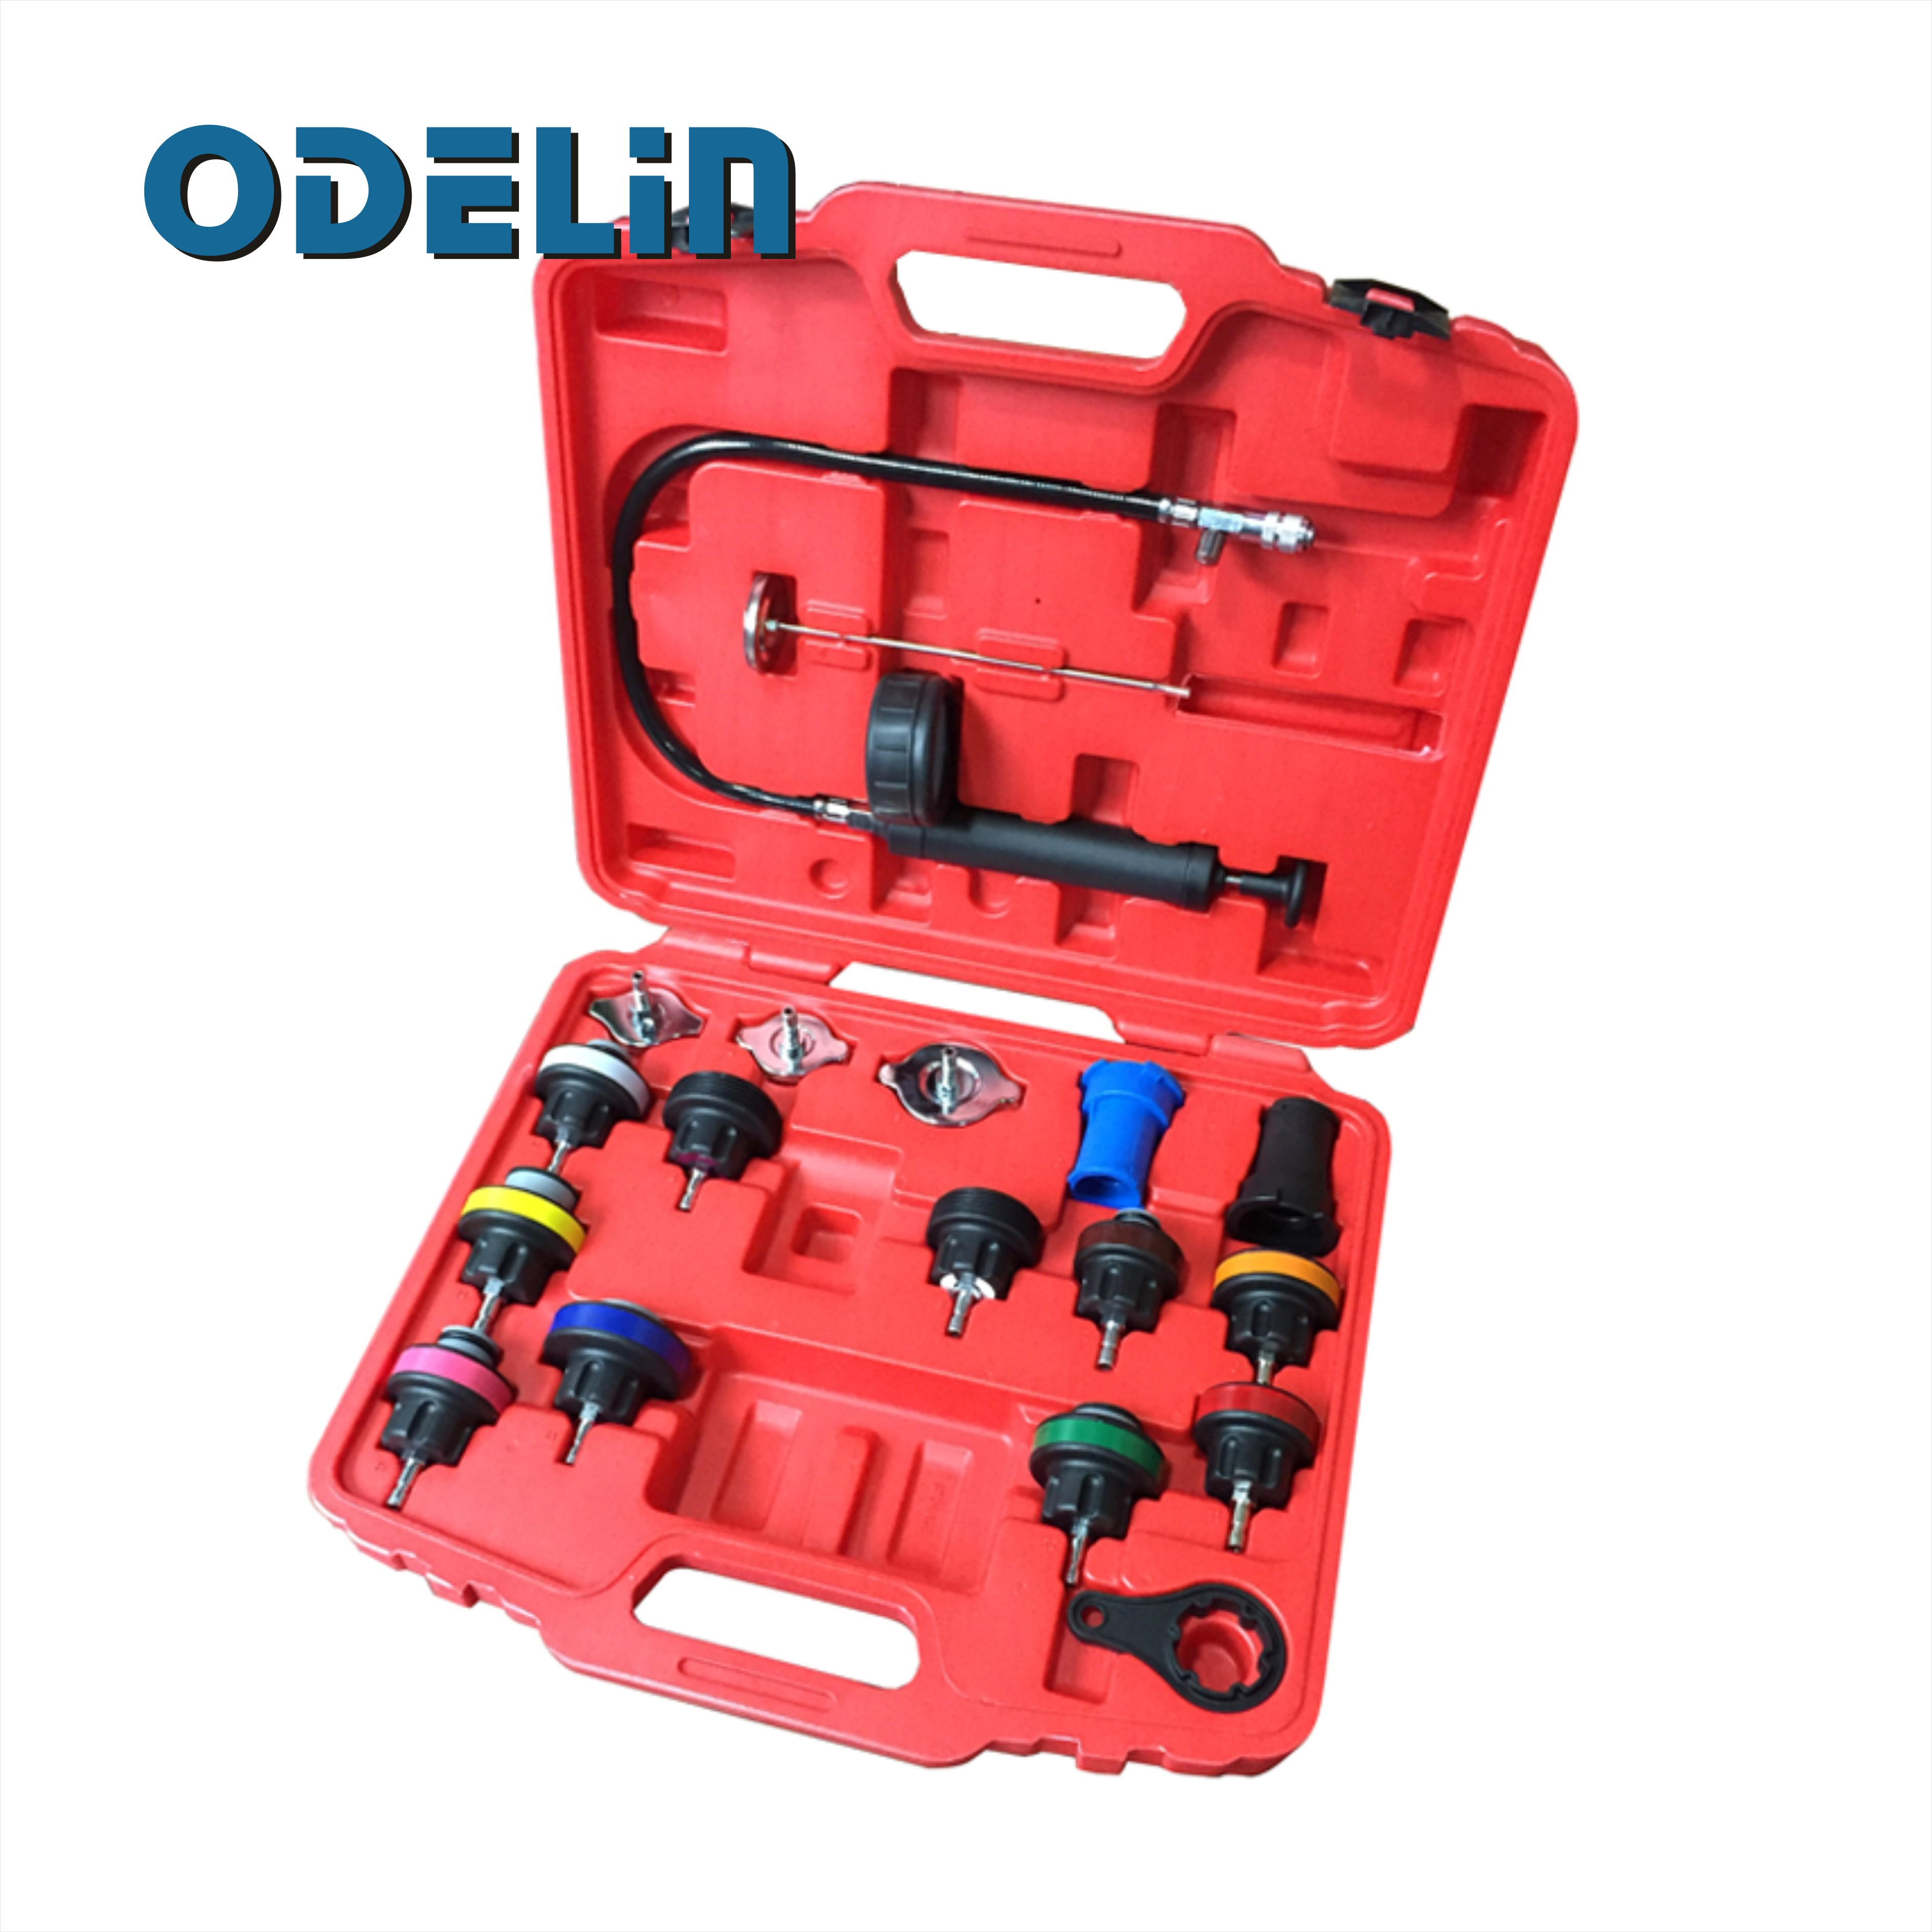 18 Pcs Universal Radiator Pressure Tester Tool Kit Cooling System Testing Tool new 14 pcs car water tank leakage detector radiator coolant system pressure test tool